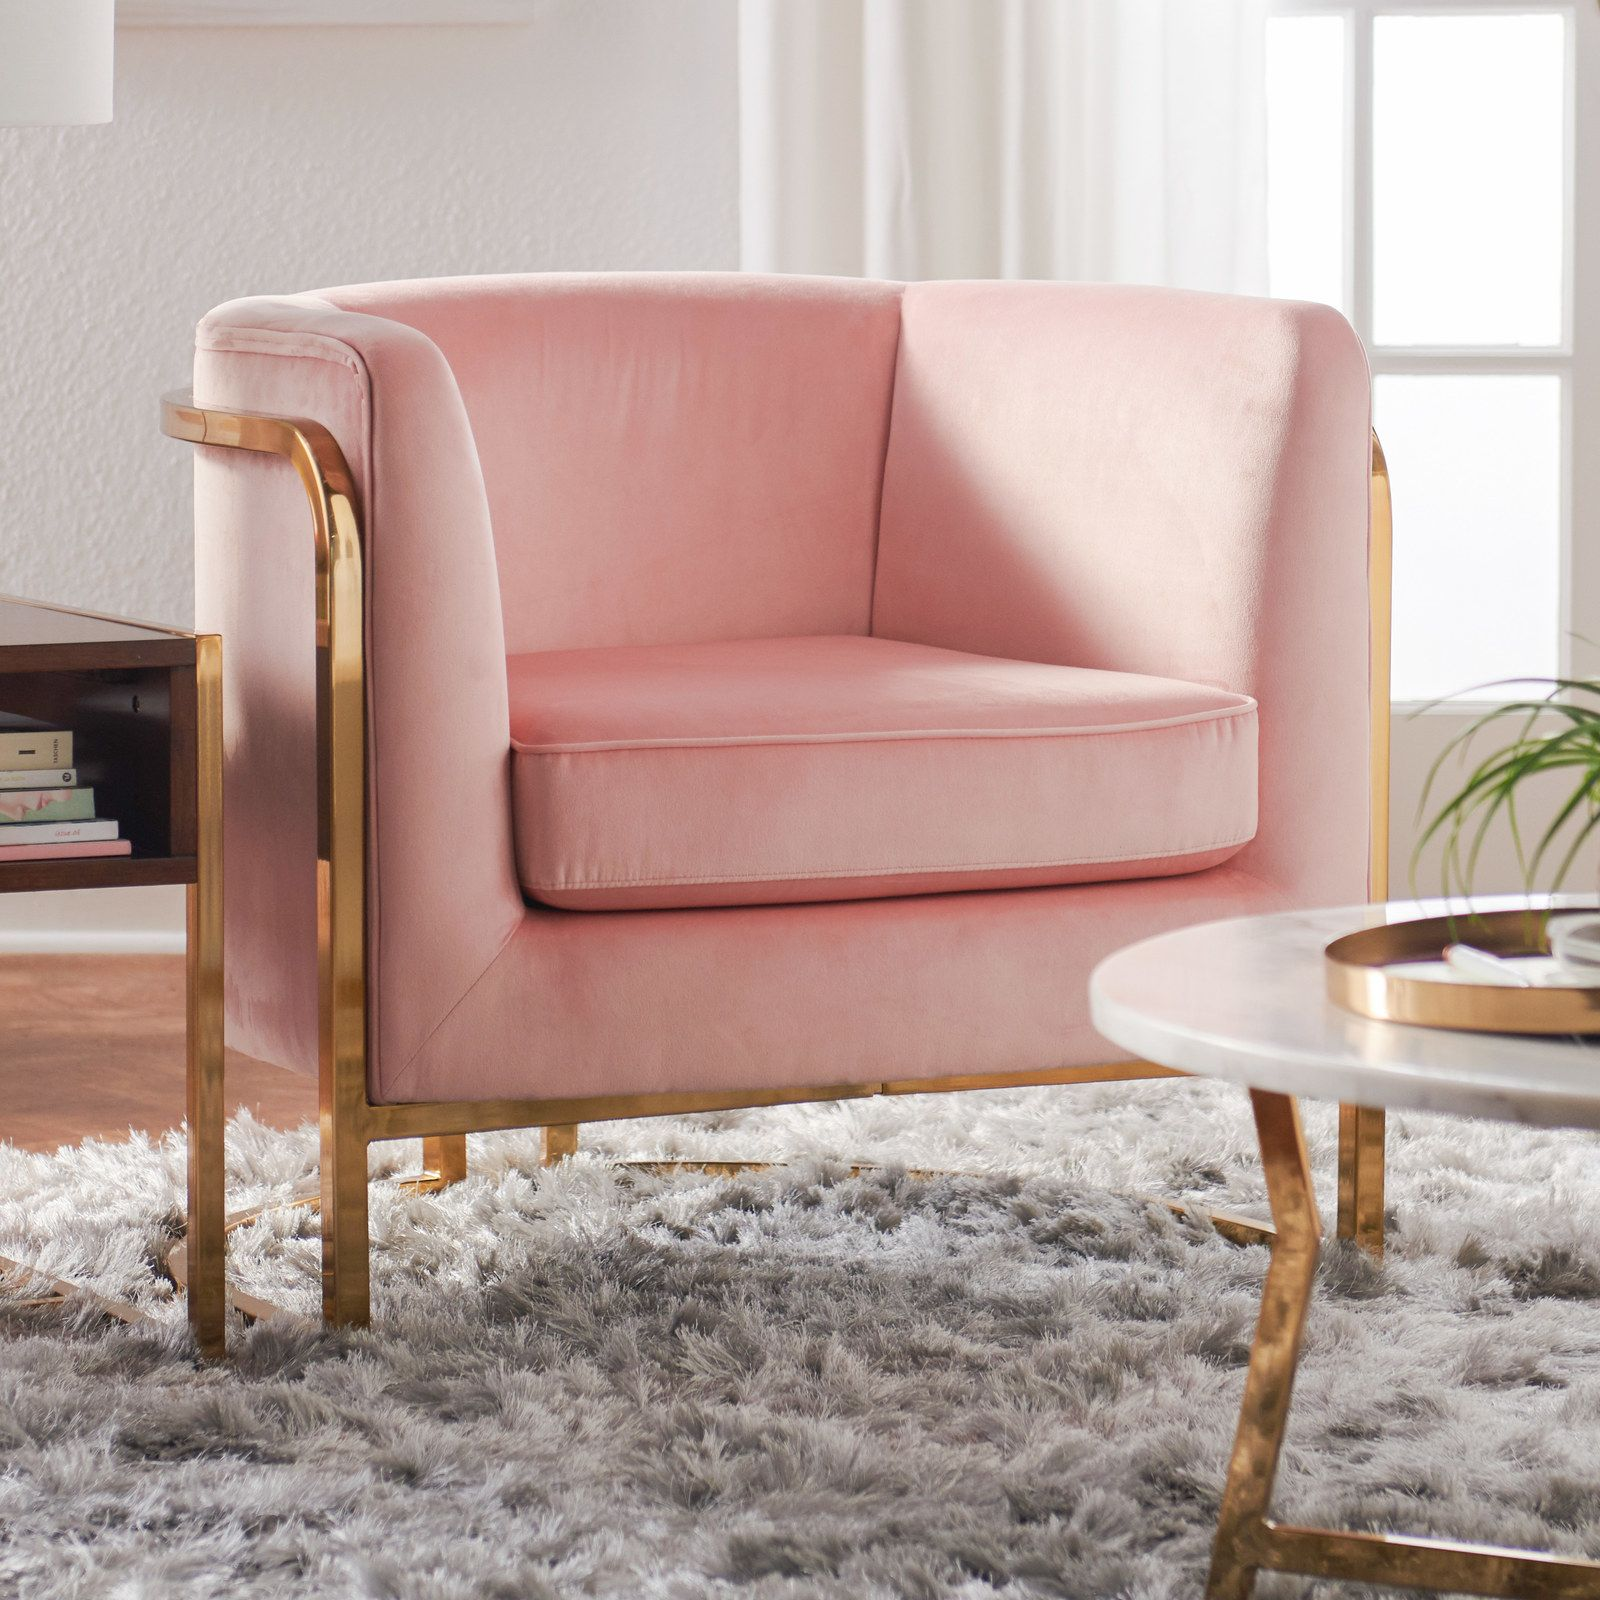 22 Of The Best Accent Chairs You Can Get At Walmart Accent